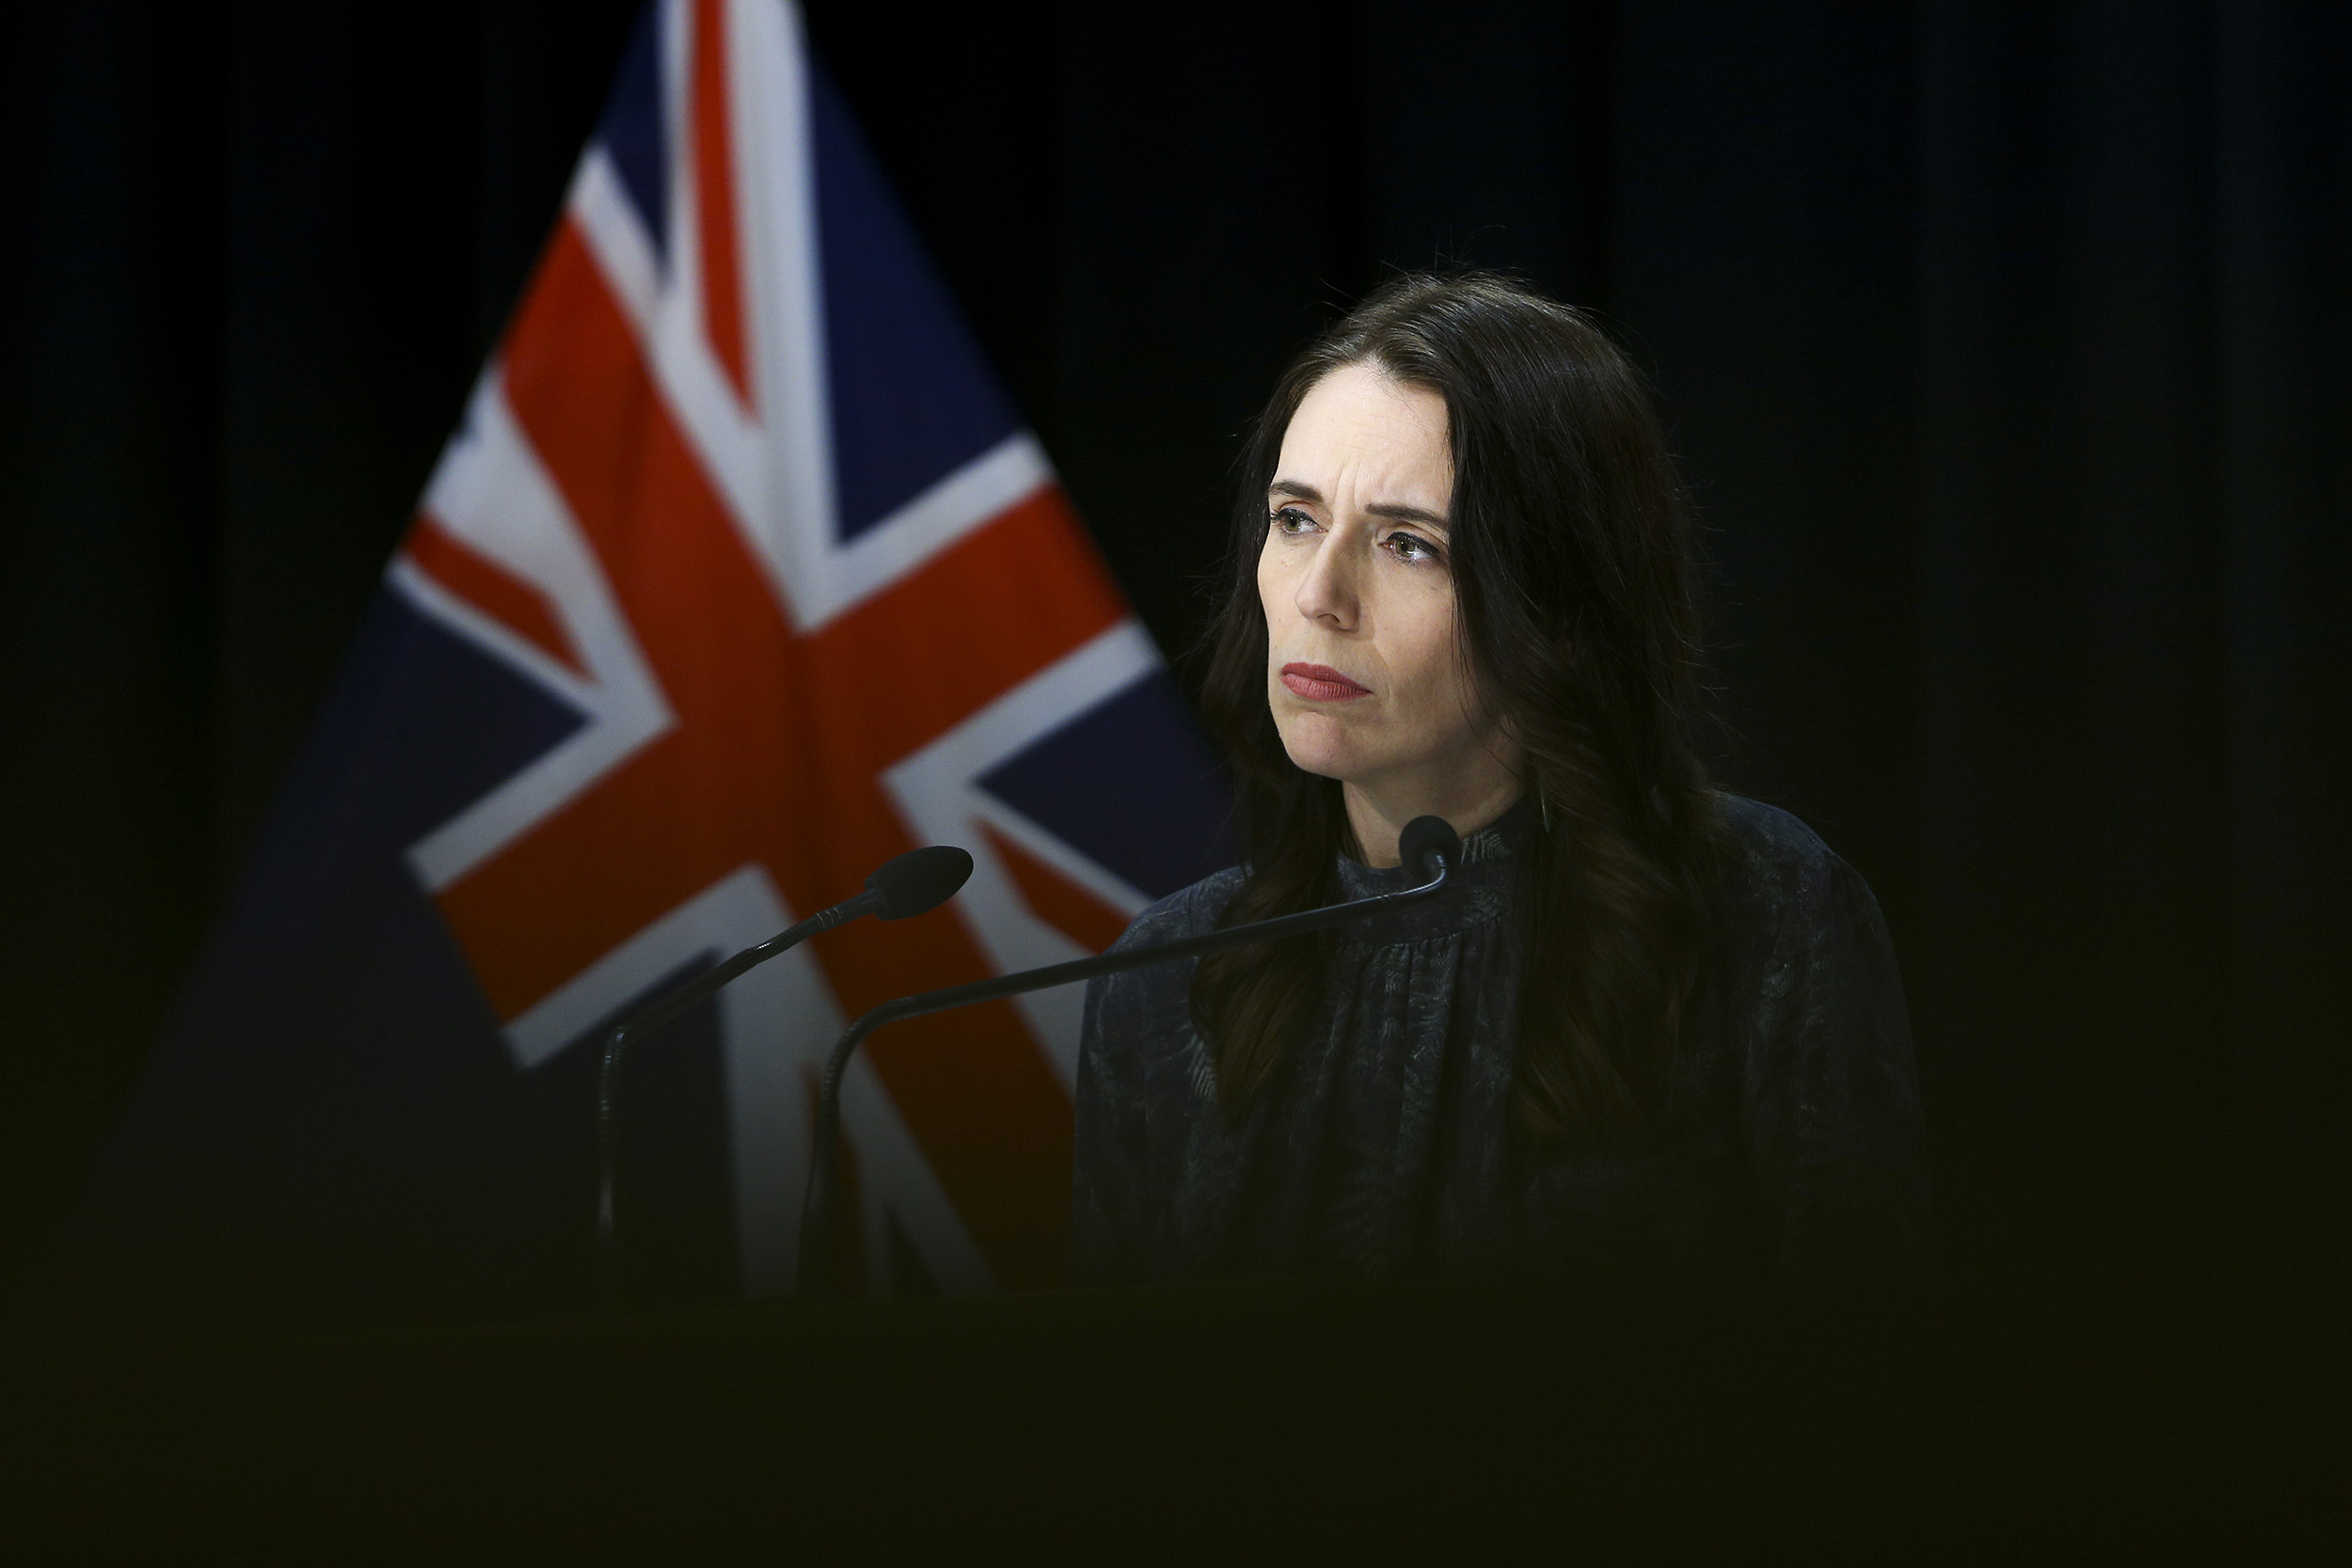 Prime Minister Jacinda Ardern looks on during a news conference at Parliament on August 21, in Wellington, New Zealand.